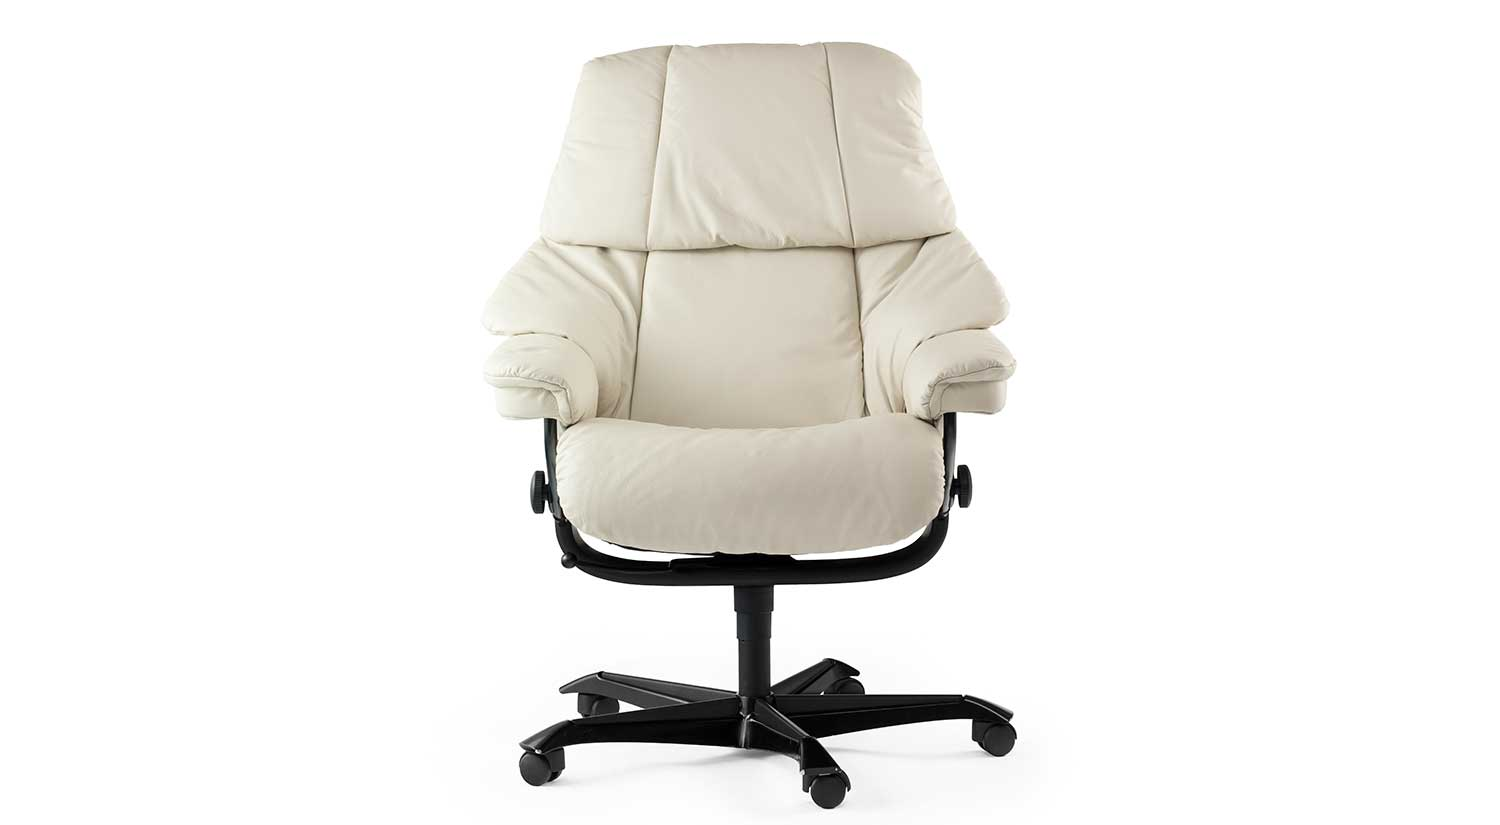 circle furniture - stressless reno office chair | office chairs ma